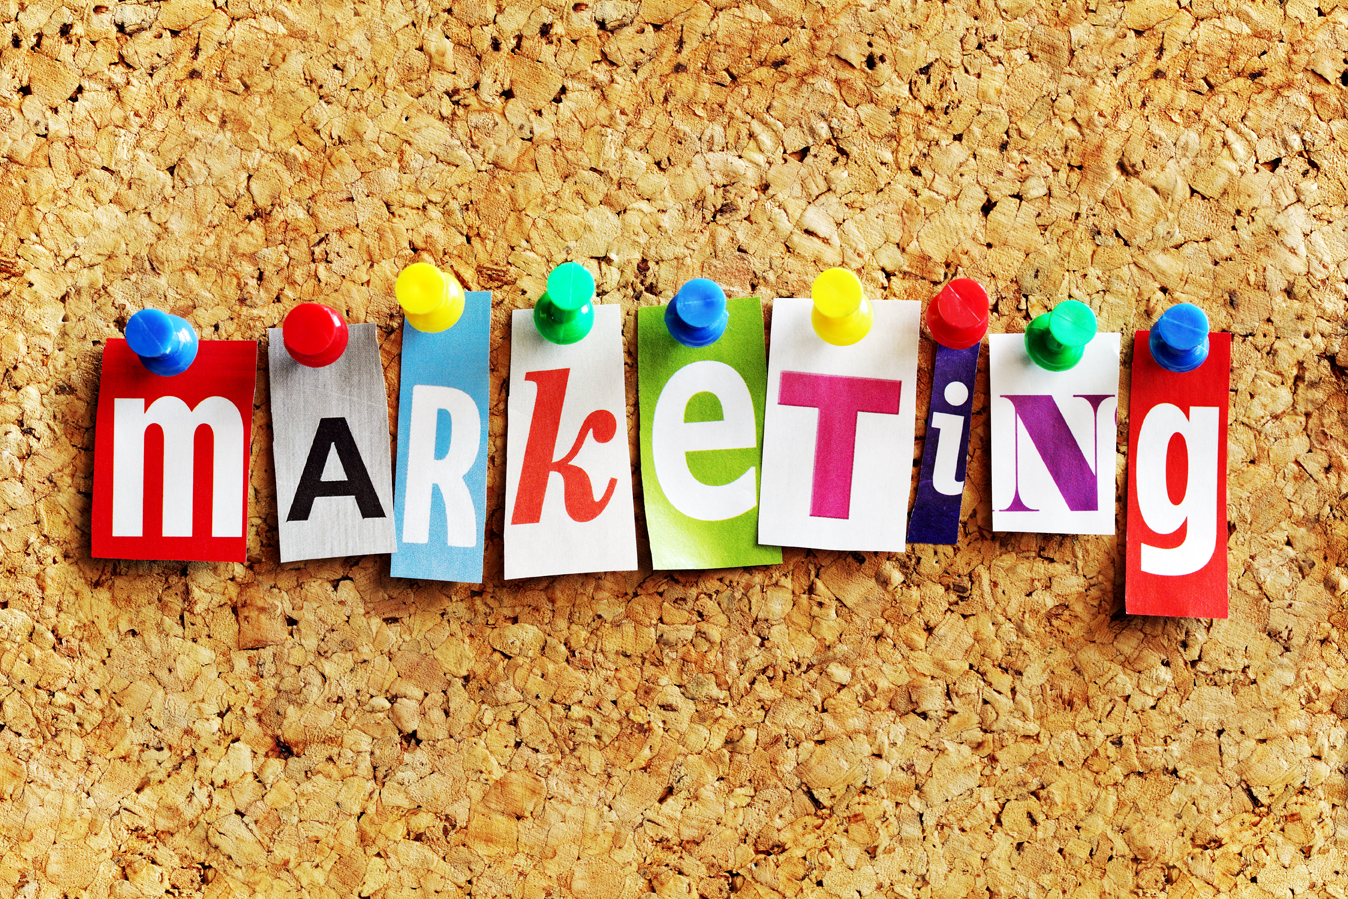 One Marketing Mistake You Can't Afford to Make